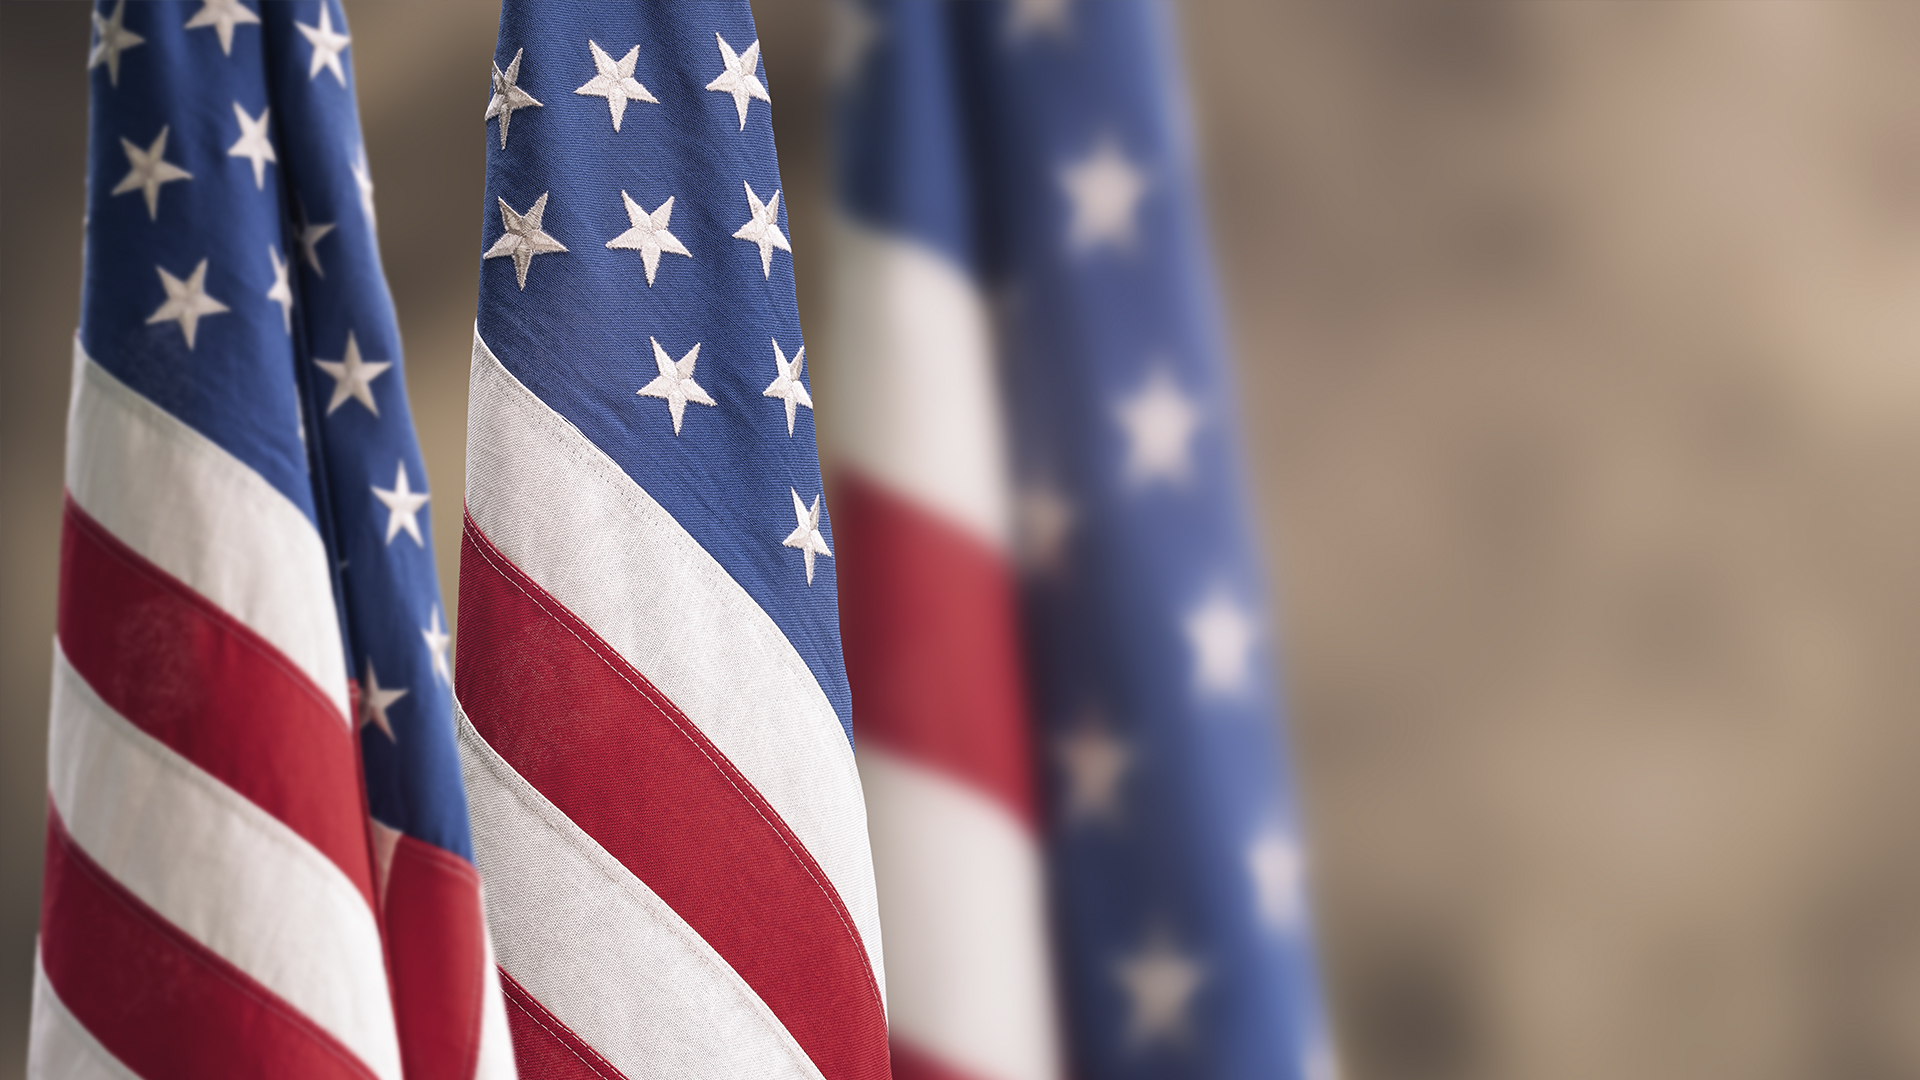 Three United States flags